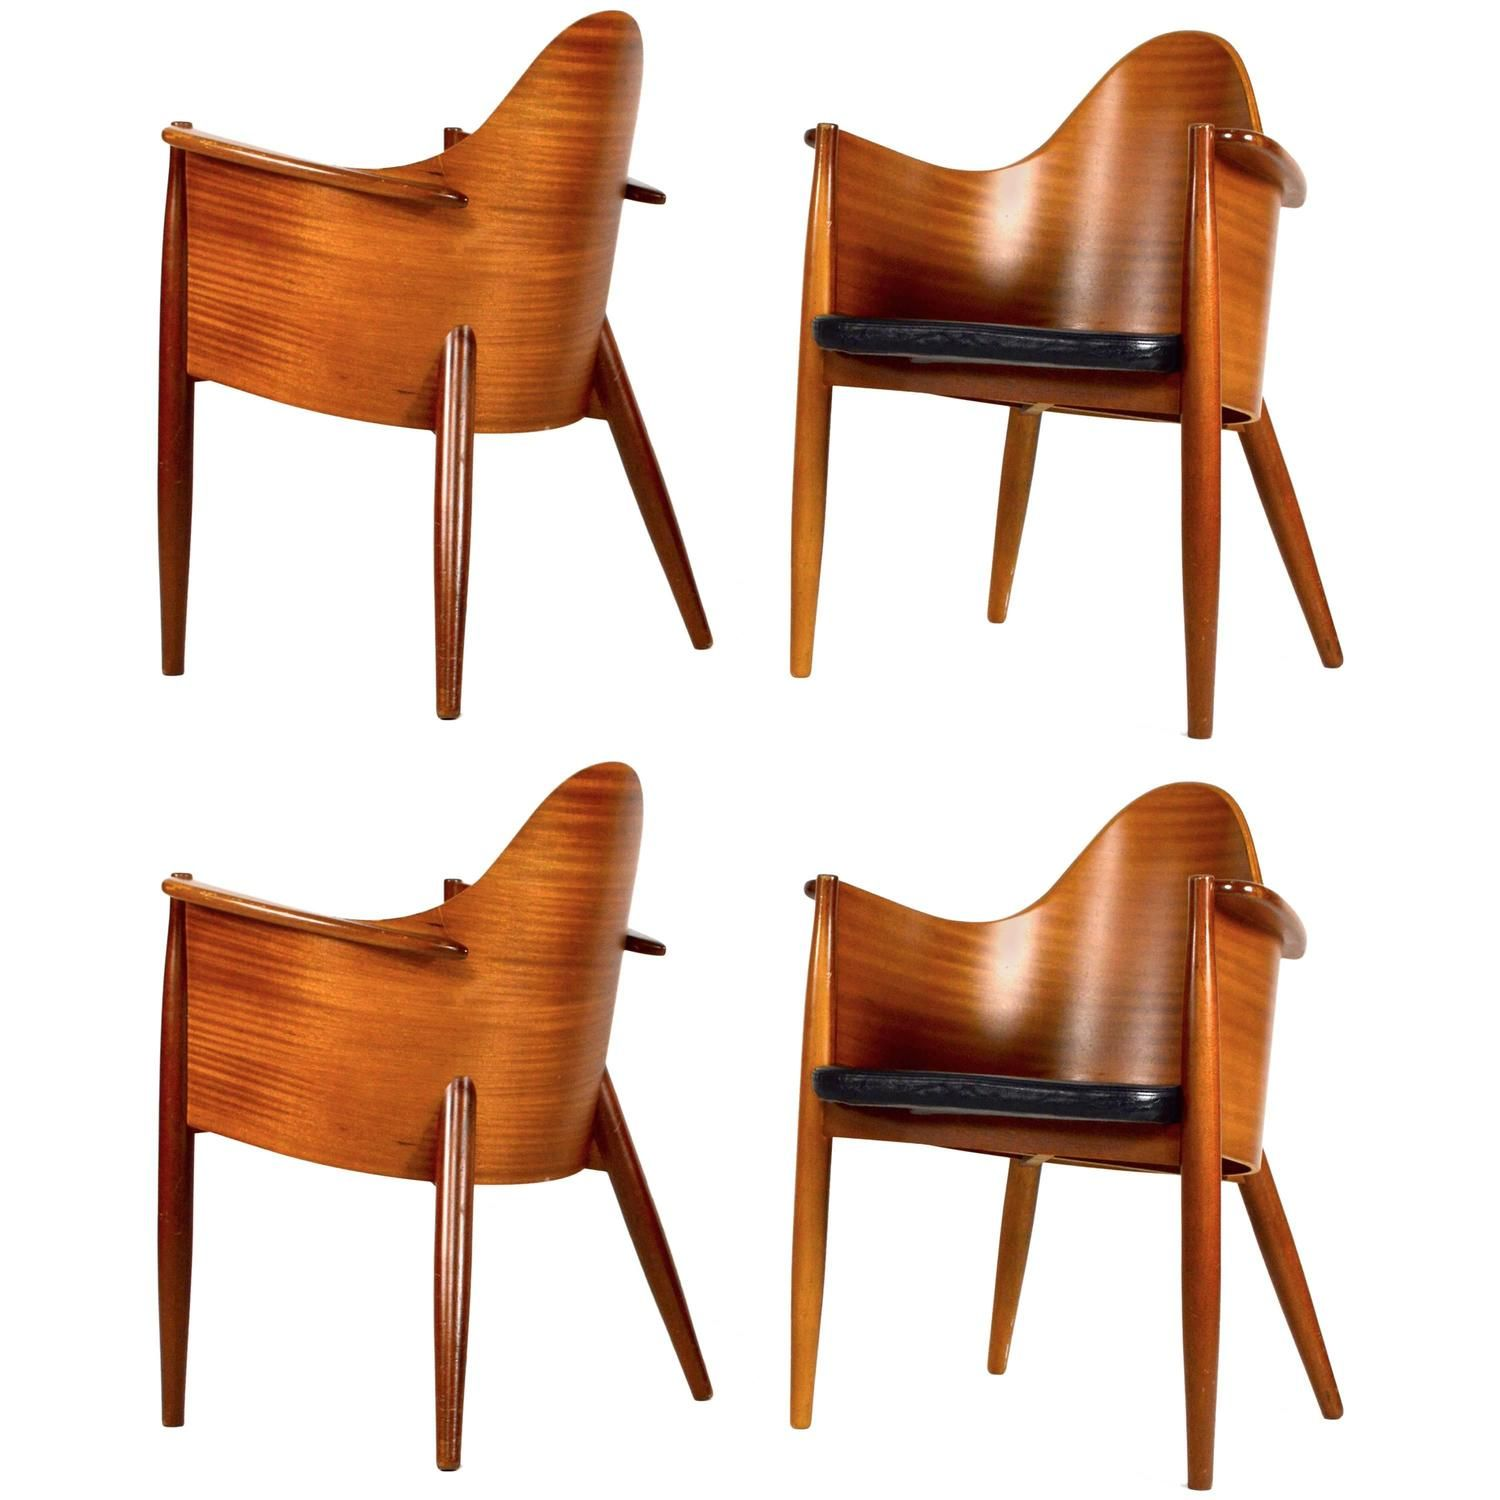 Scandinavian Teak Bedroom Furniture Very Rare Set Of 4 Scandinavian Teak Plywood Leather Side Chairs